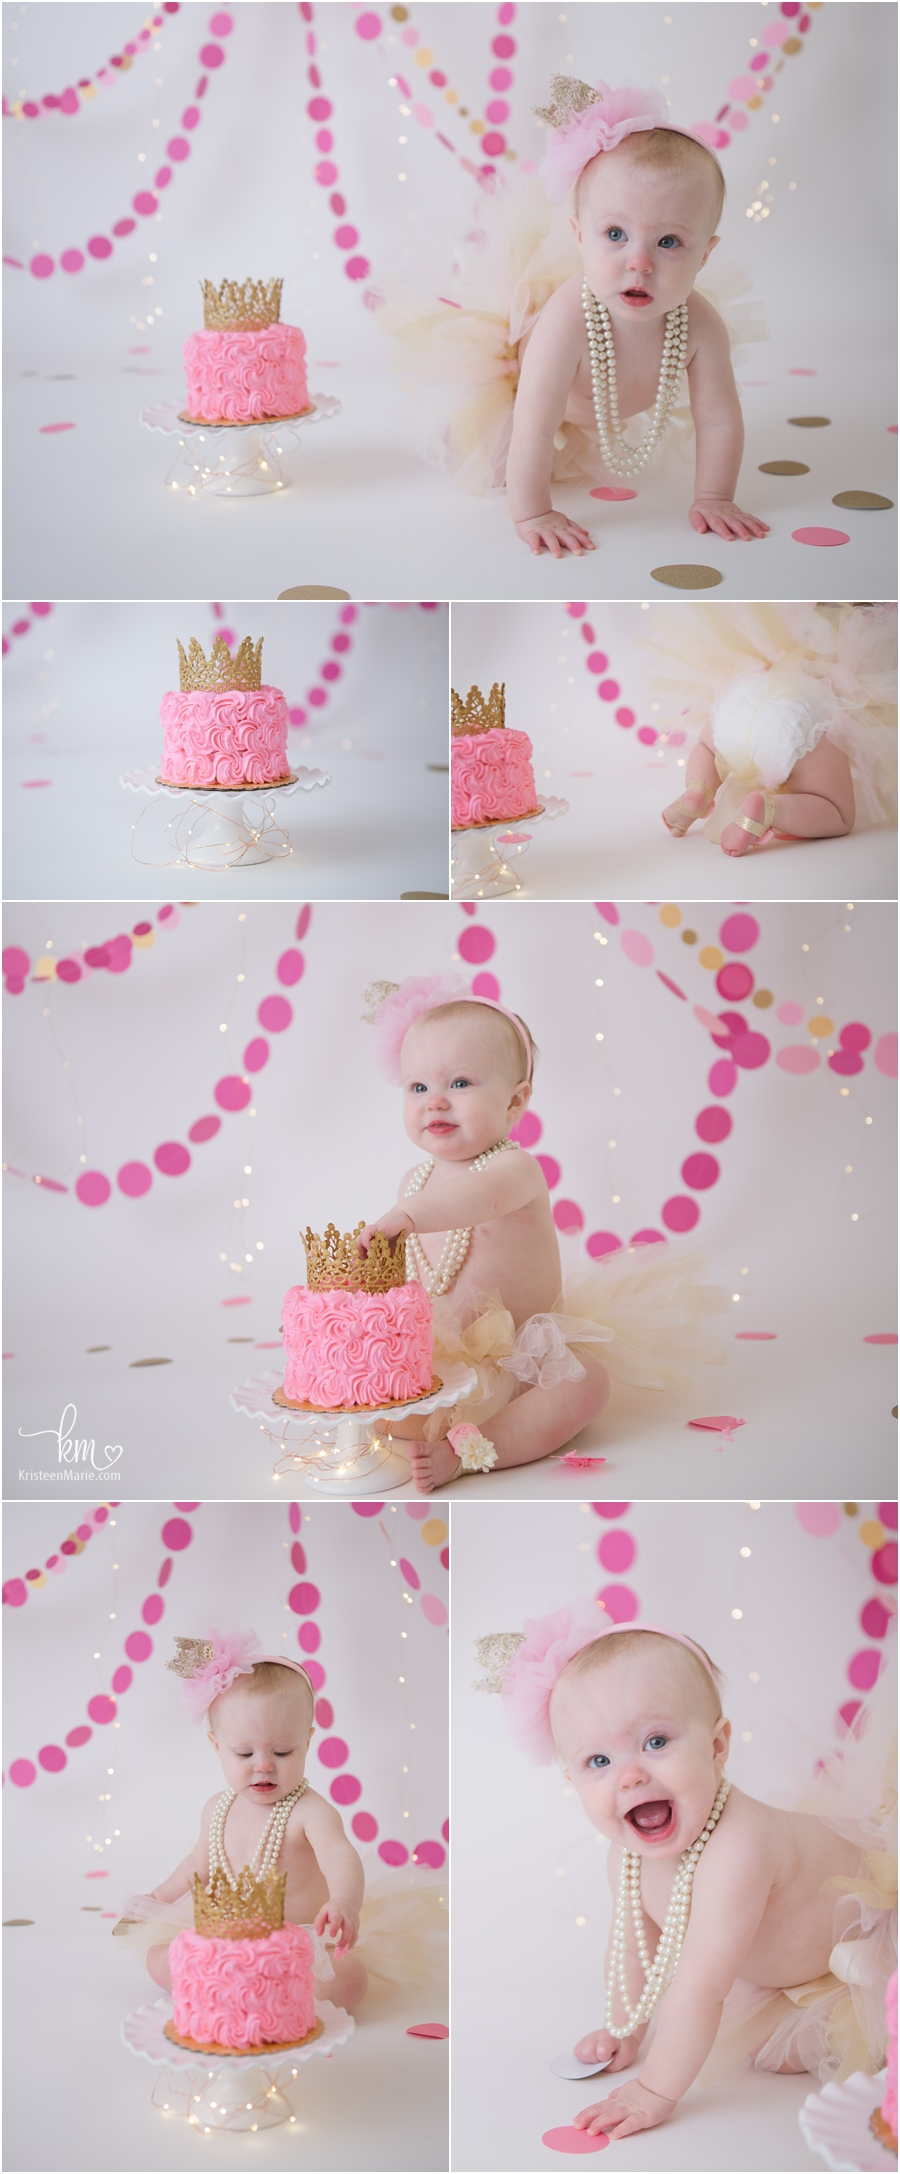 The birthday girl - pink and gold